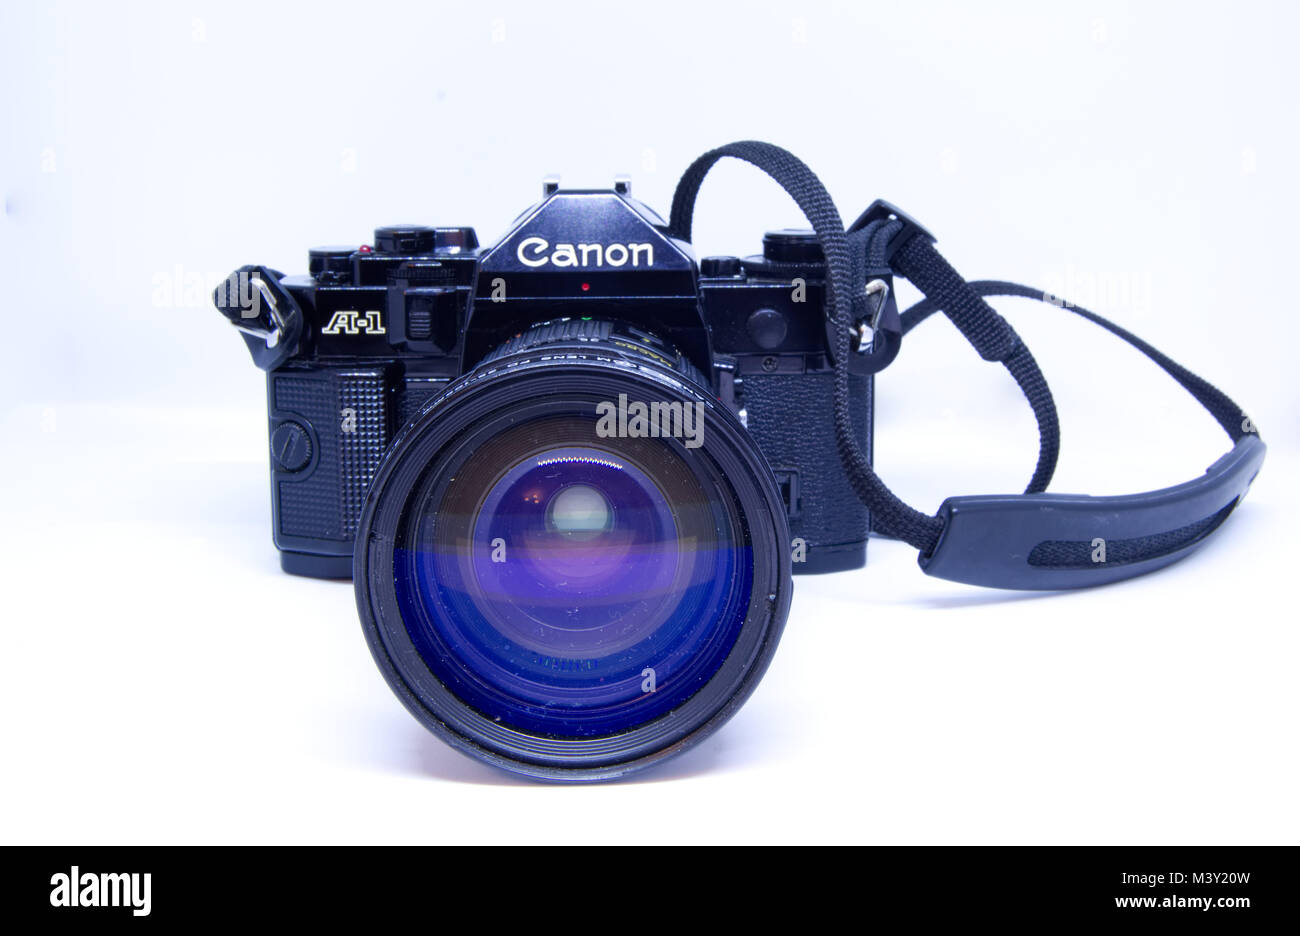 Canon A-1 film camera pictured on a white background - Stock Image